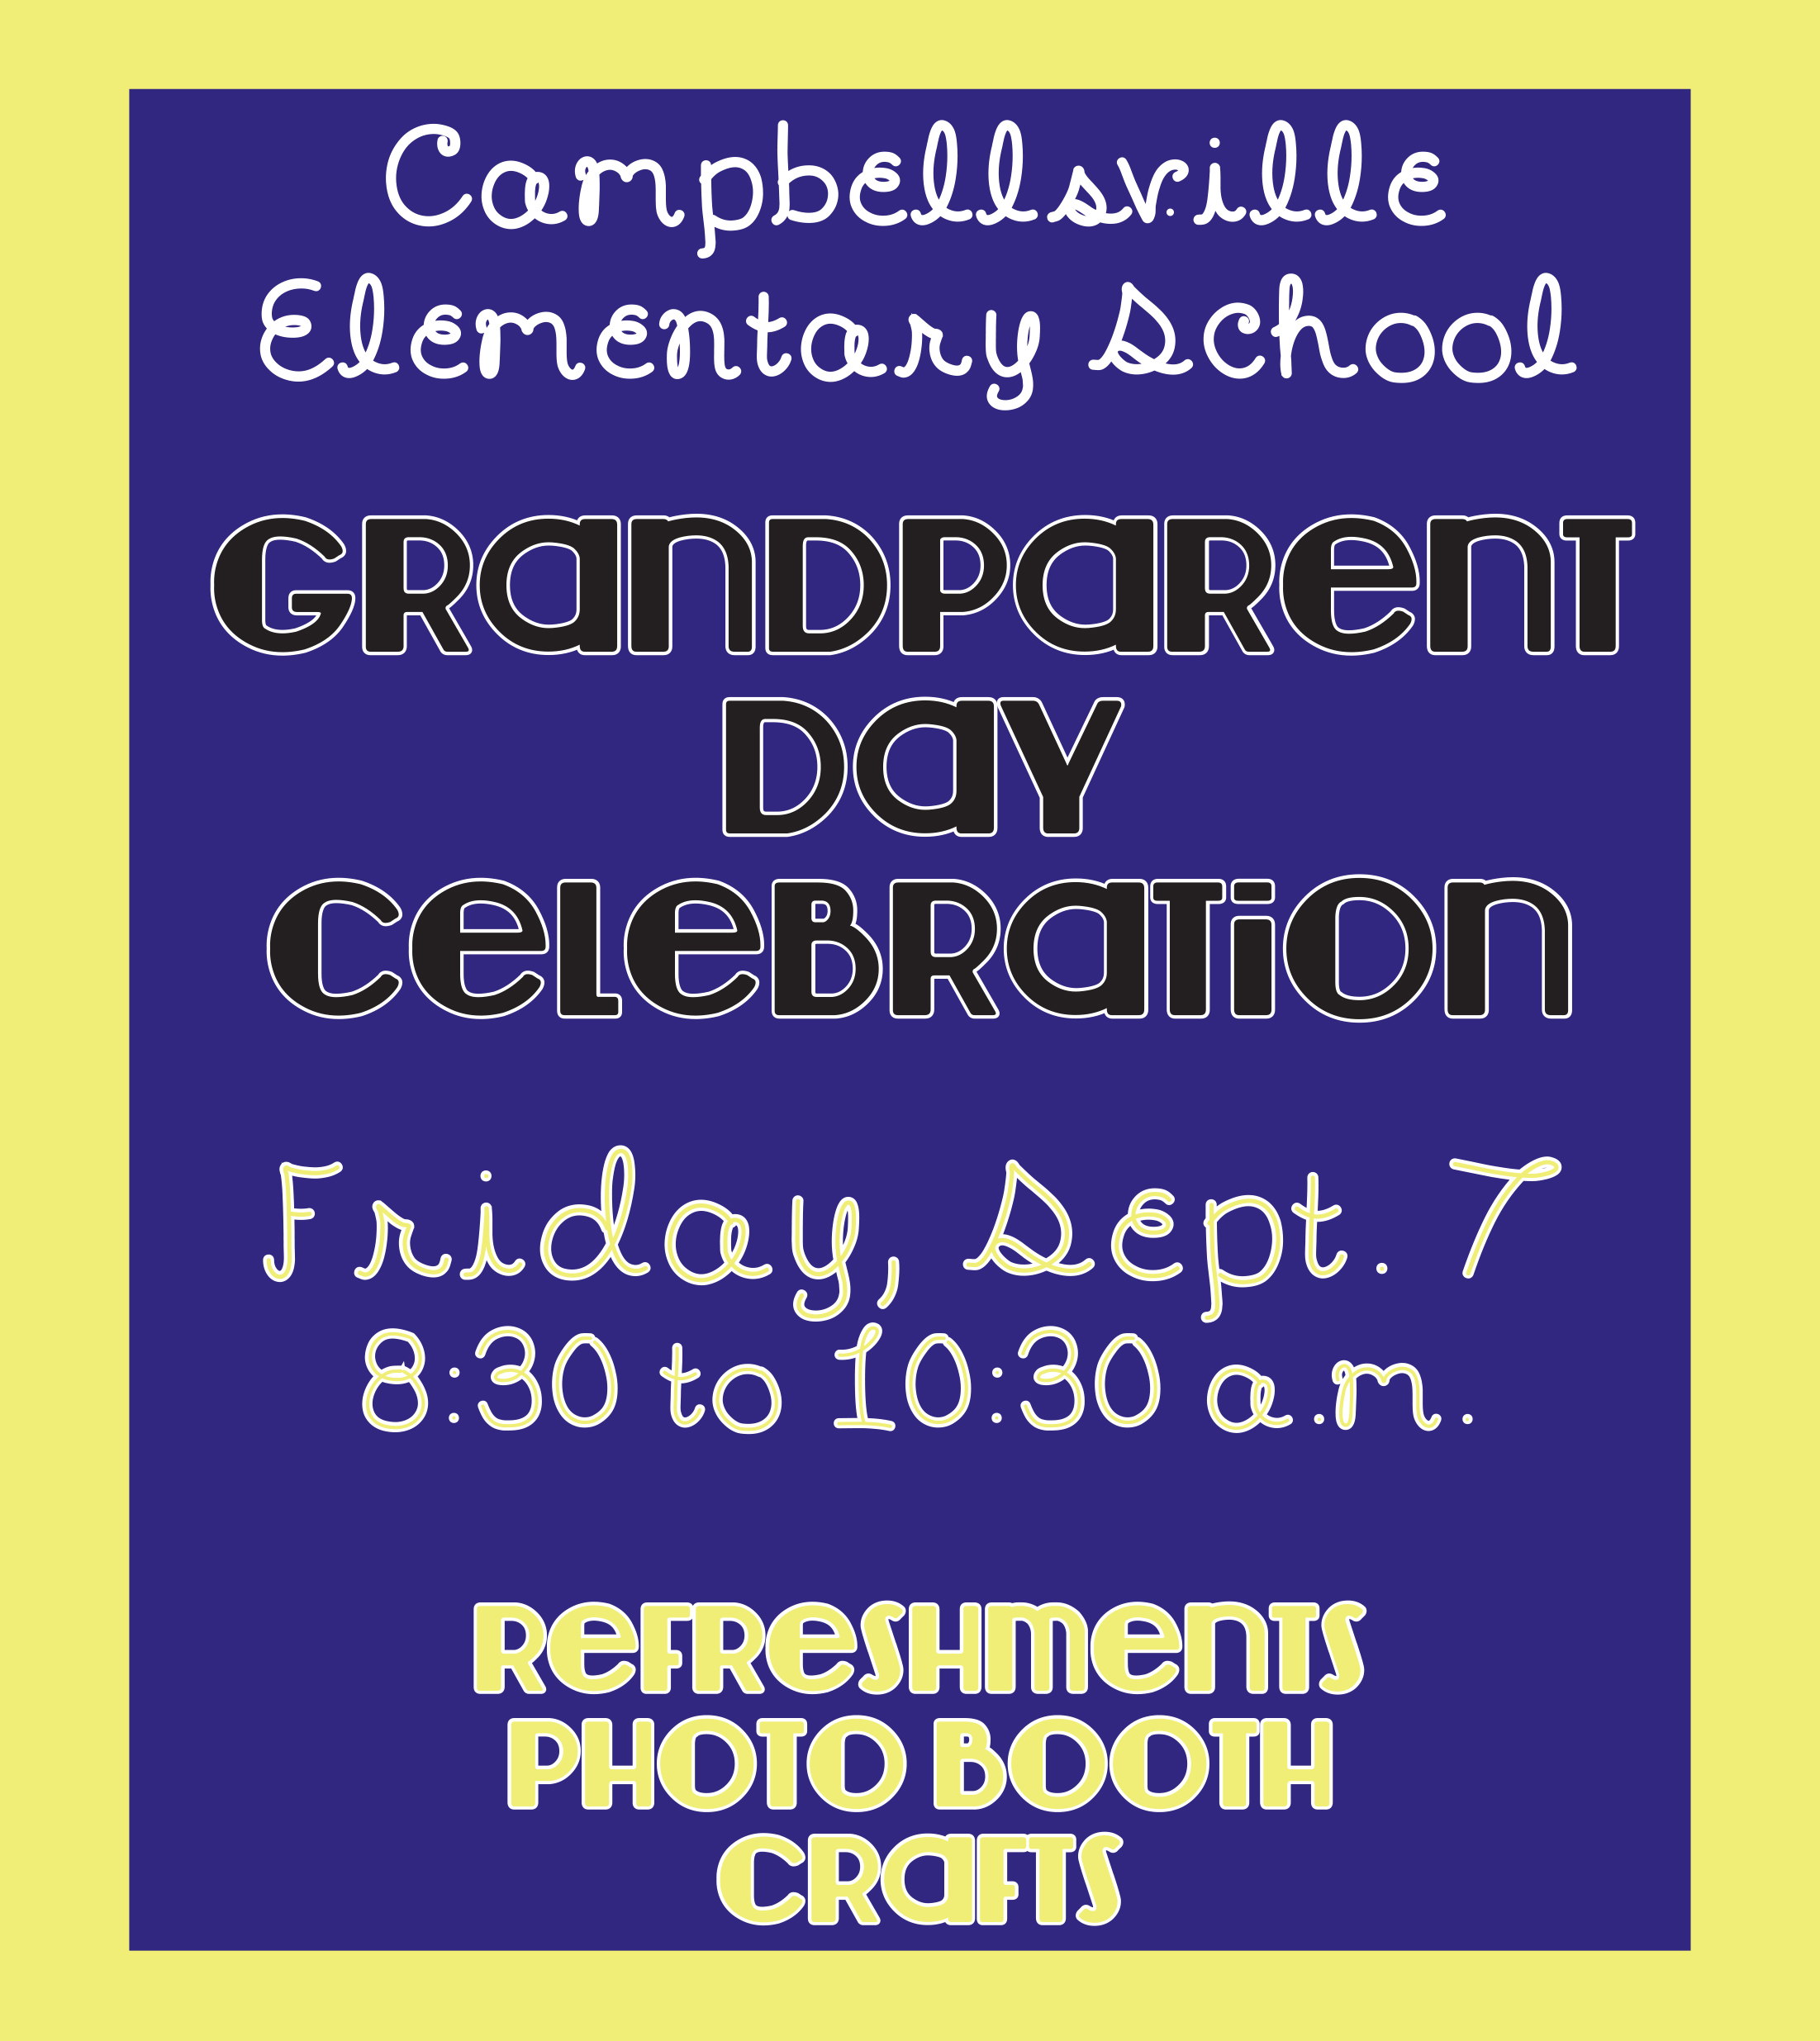 Campbellsville Elementary School will host its annual Grandparent Day celebration on Friday, Sept. 7.    The event will be from 8:30 to 10:30 a.m. in the CES cafeteria.    There will be refreshments, a photo booth and craft.